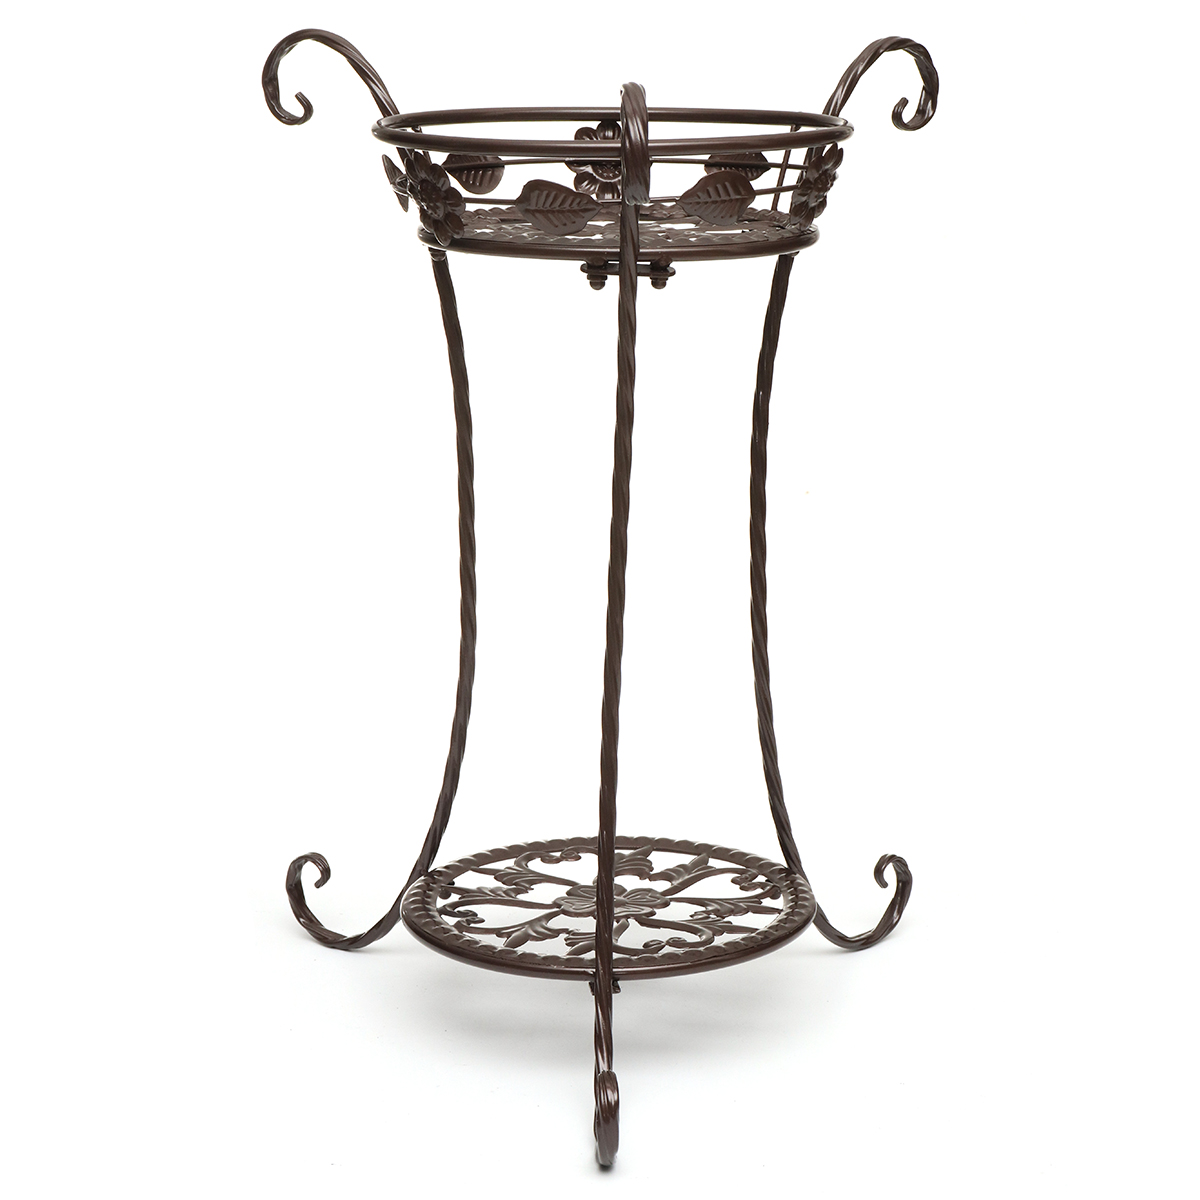 Garden Balcony Indoor Wrought Iron Flower Pot Stand Plants Shelf Rack Holder Shelves